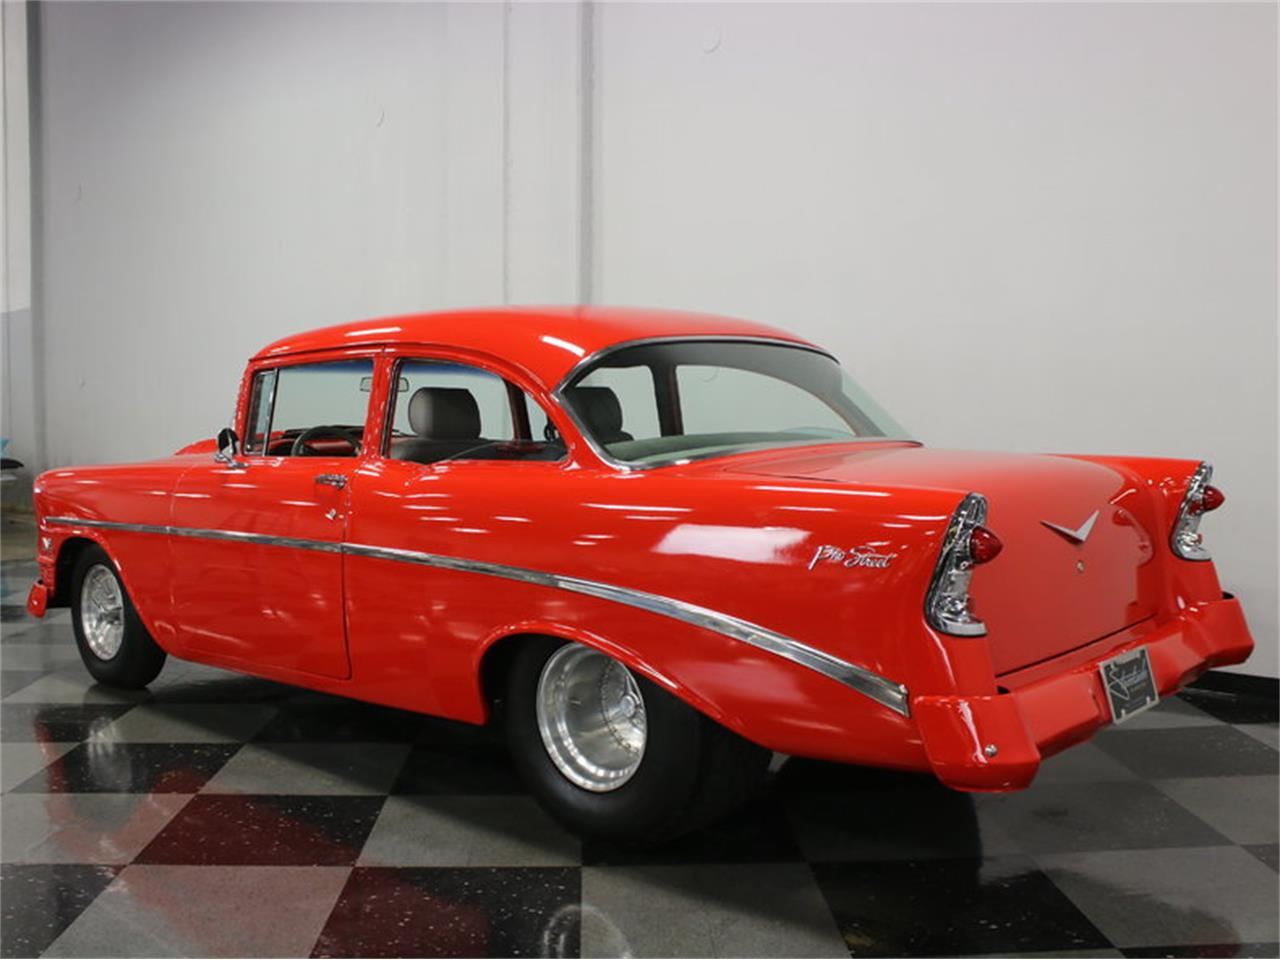 Large Picture of '56 Chevrolet 210 located in Texas - $57,995.00 Offered by Streetside Classics - Dallas / Fort Worth - JAEY